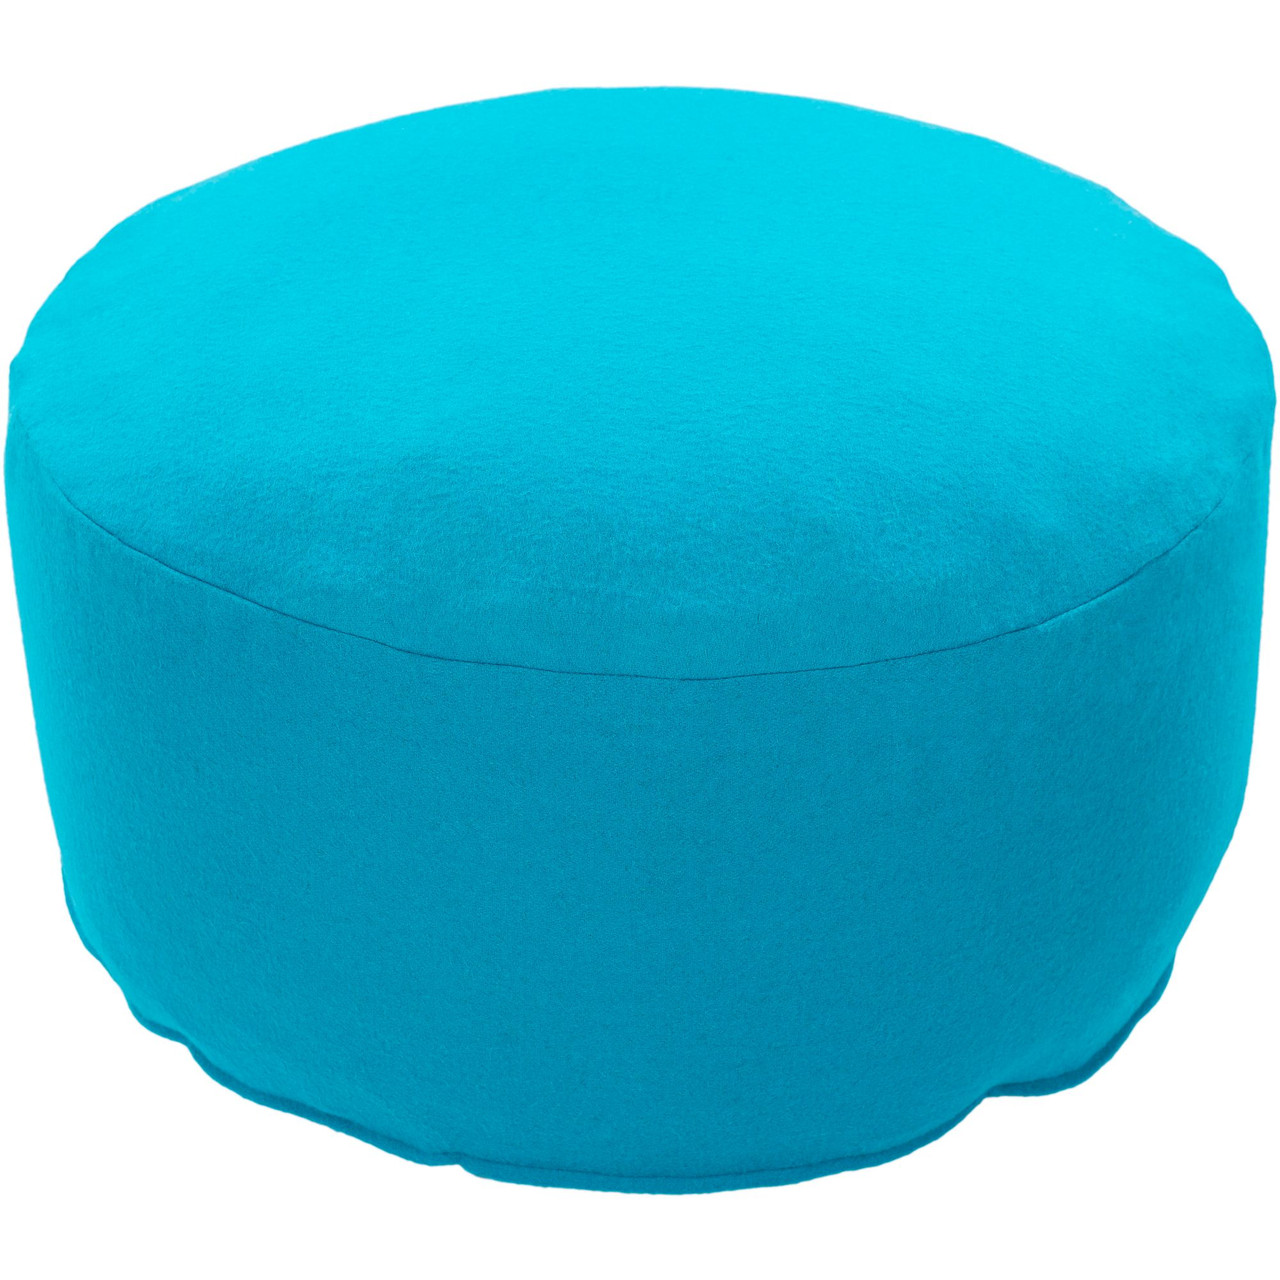 17 Aqua Blue Solid Round Wool Pouf Ottoman Christmas Central